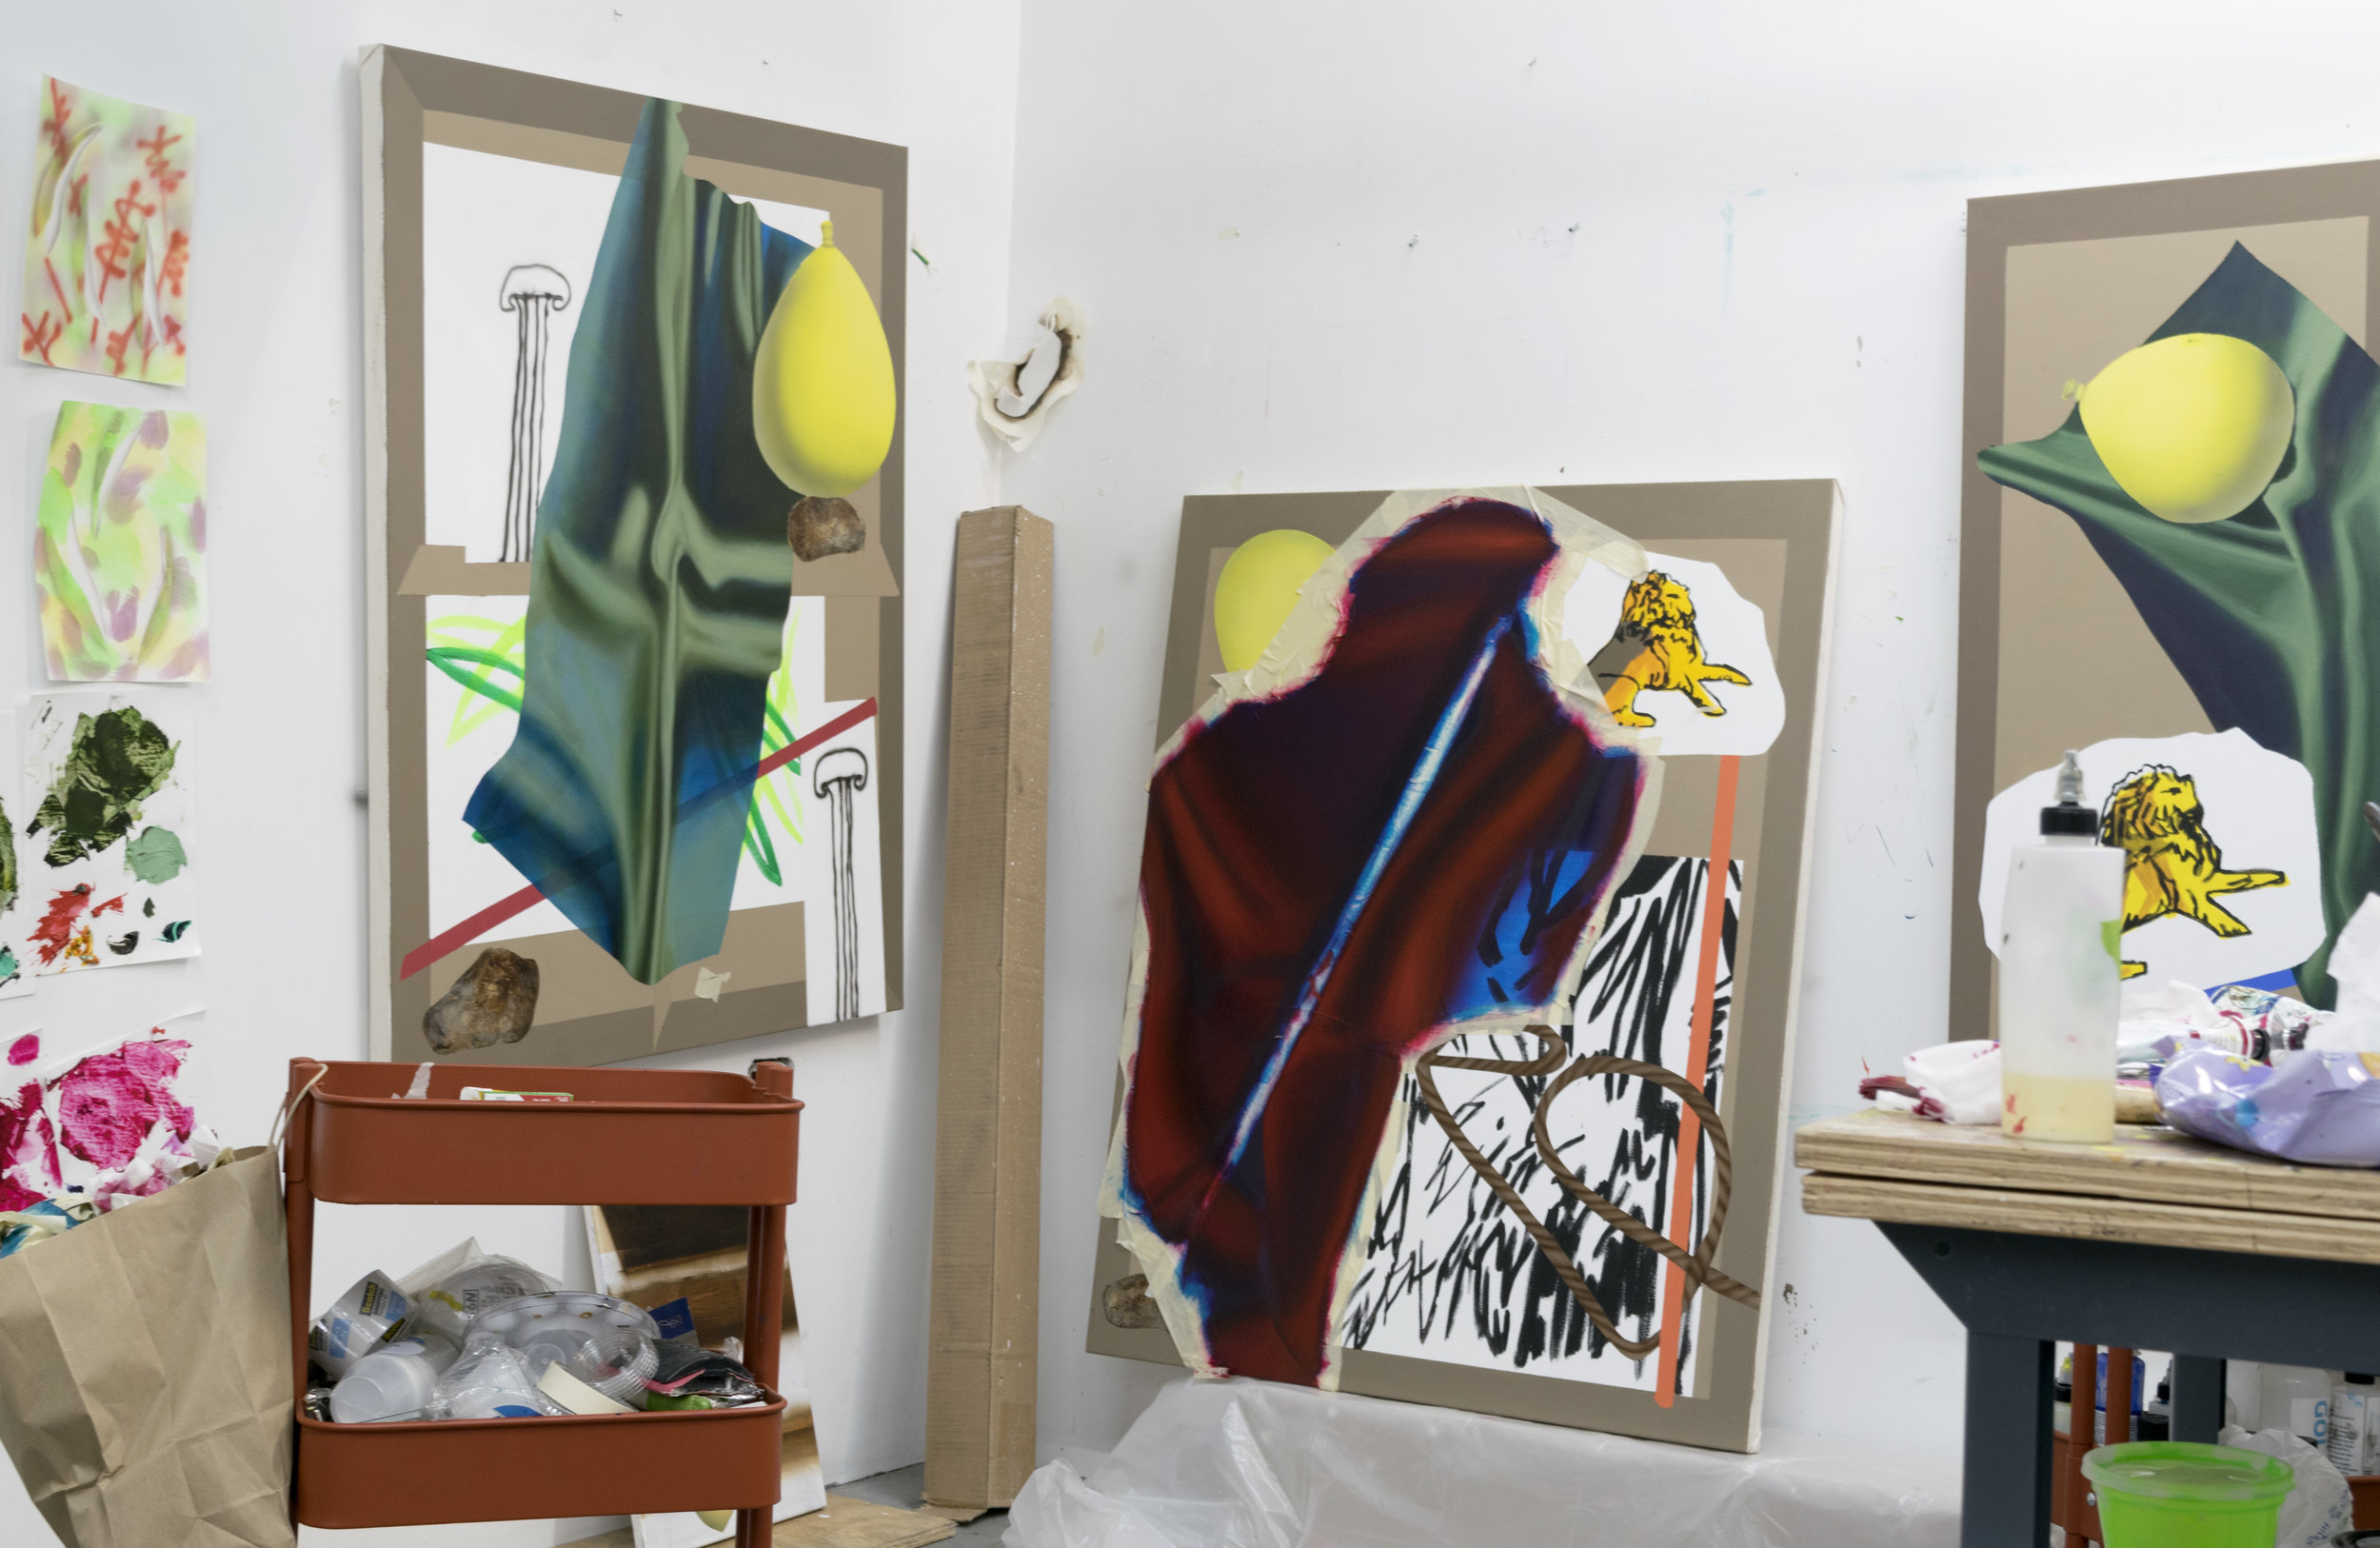 Image of Ben-Simon's studio